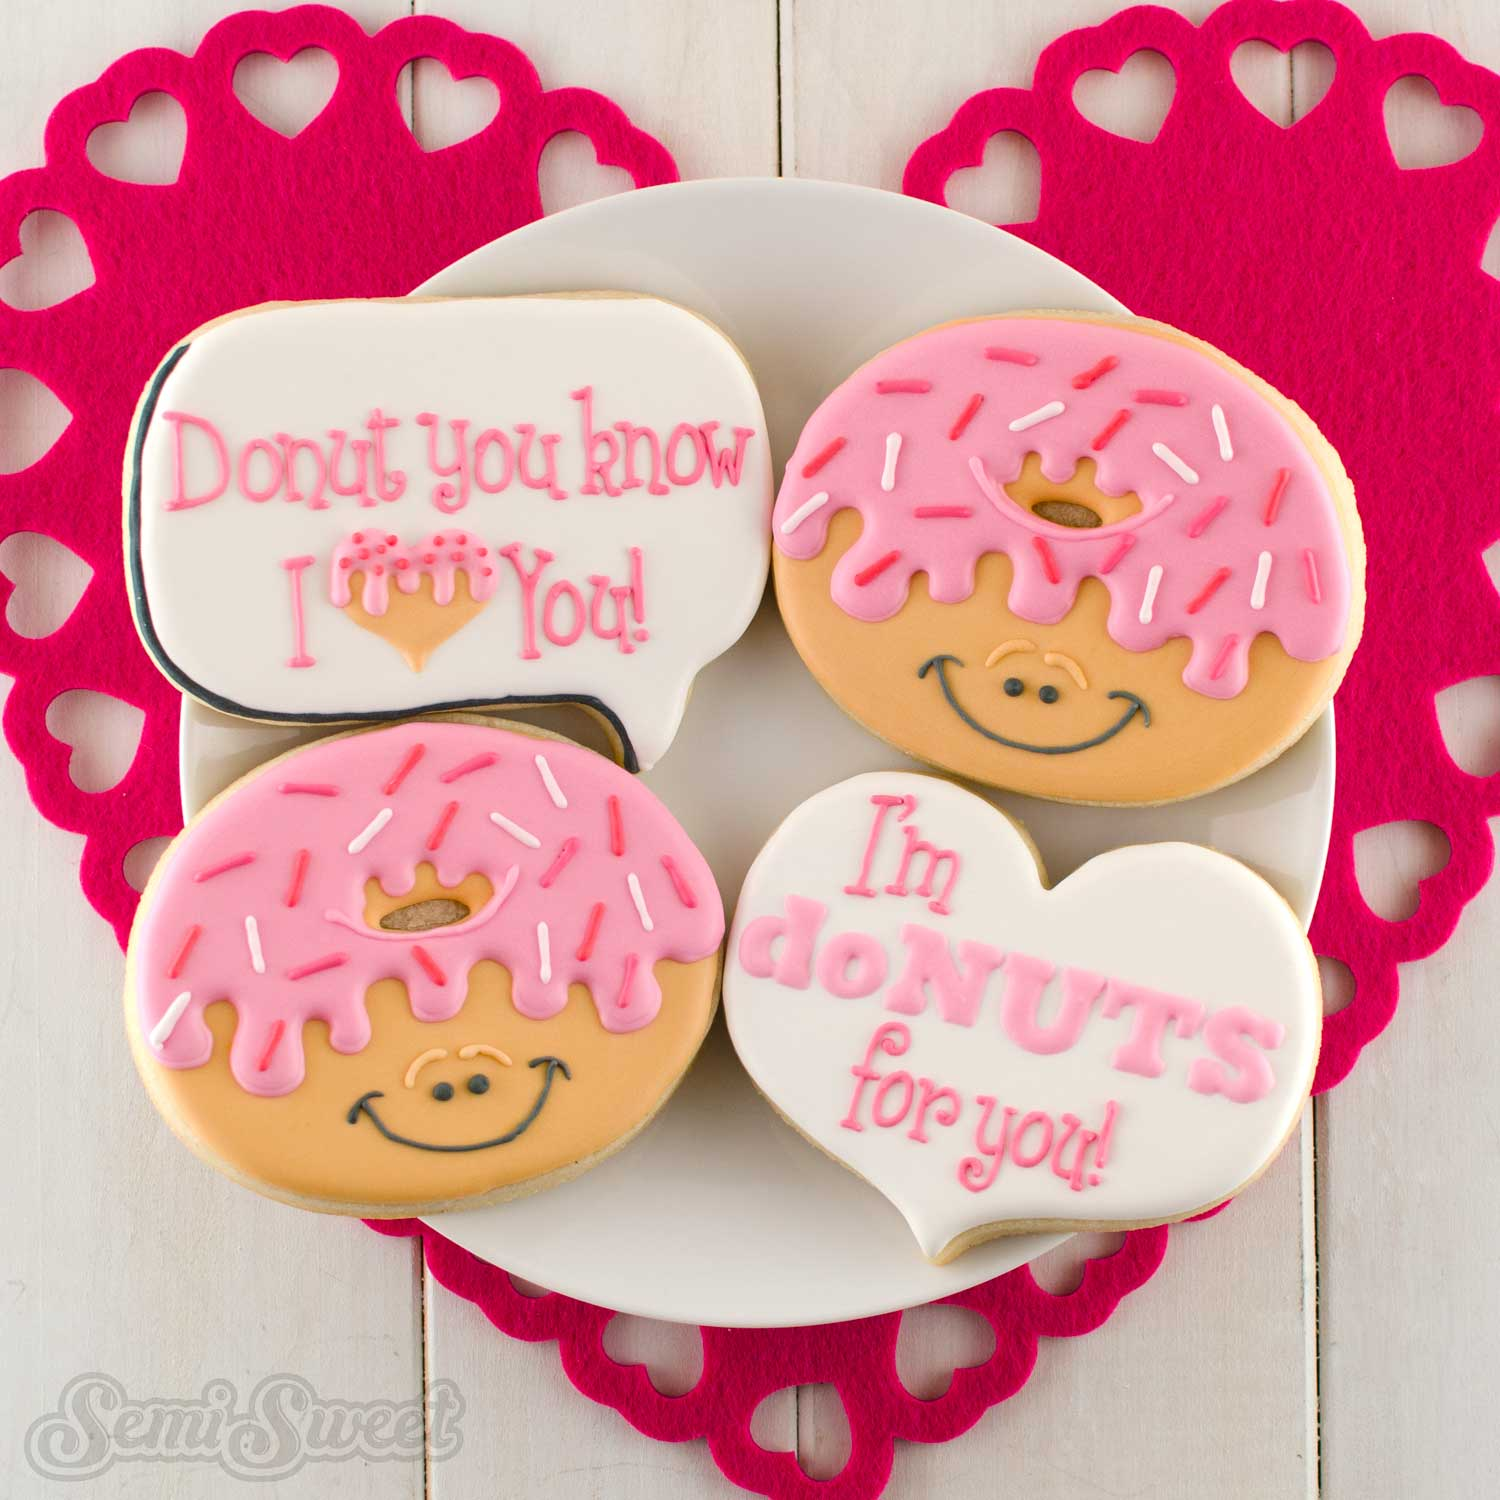 decorated donut cookies for Valentine's Day by Semi Sweet Designs